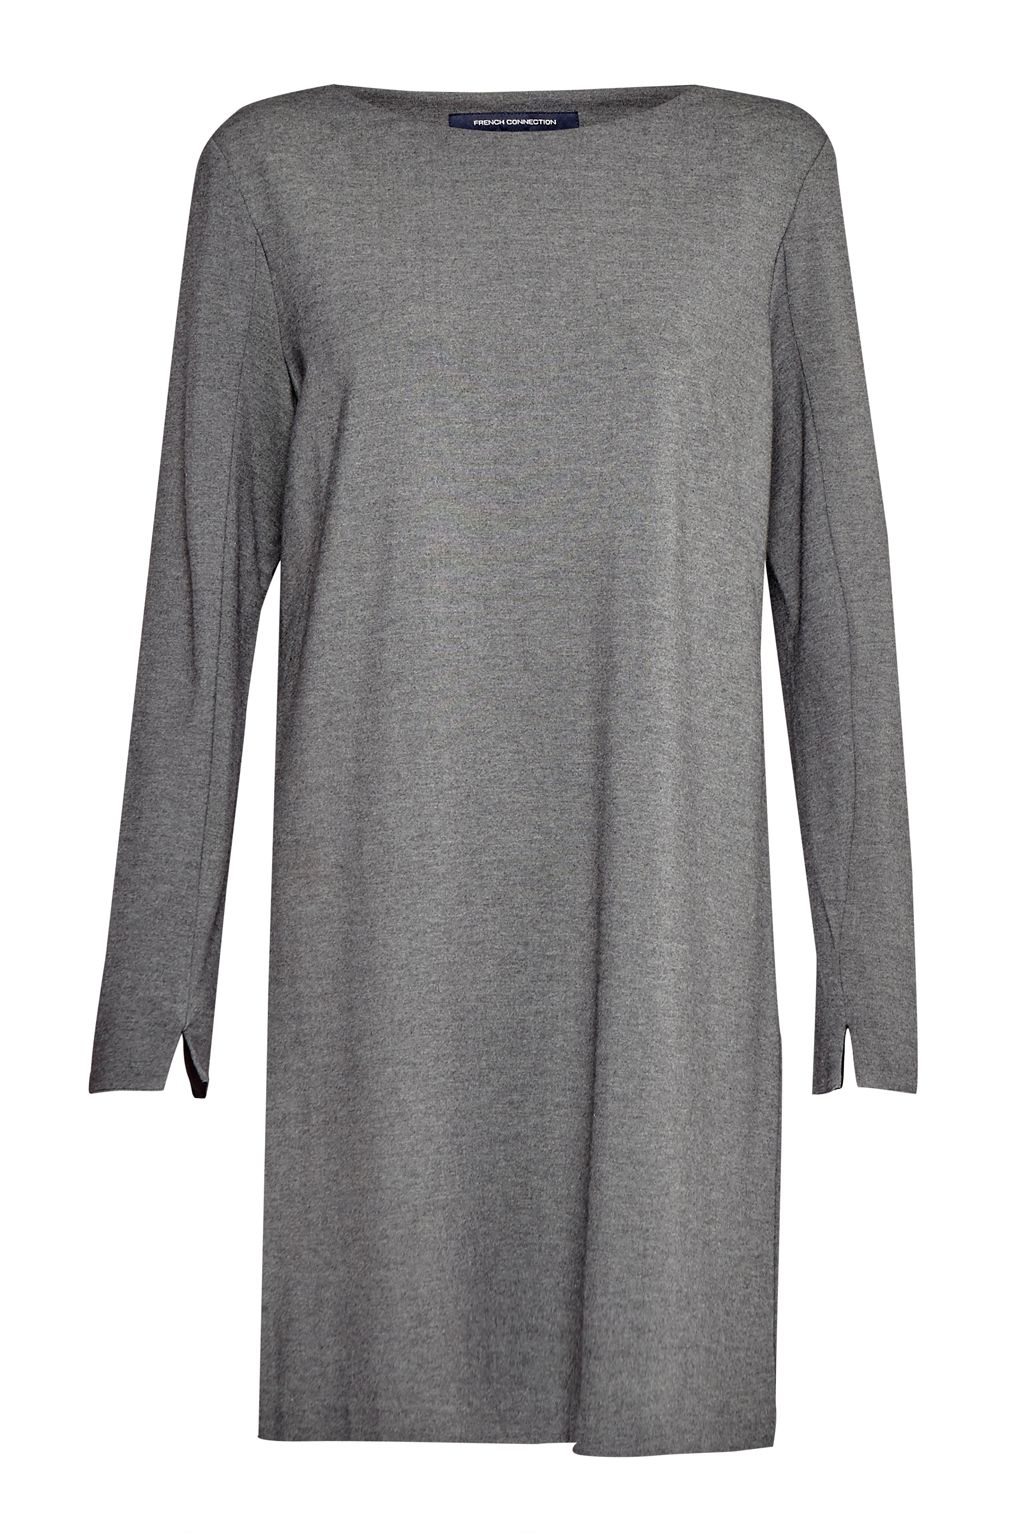 French Connection Lula Tiff Slash Neck Dress, Grey